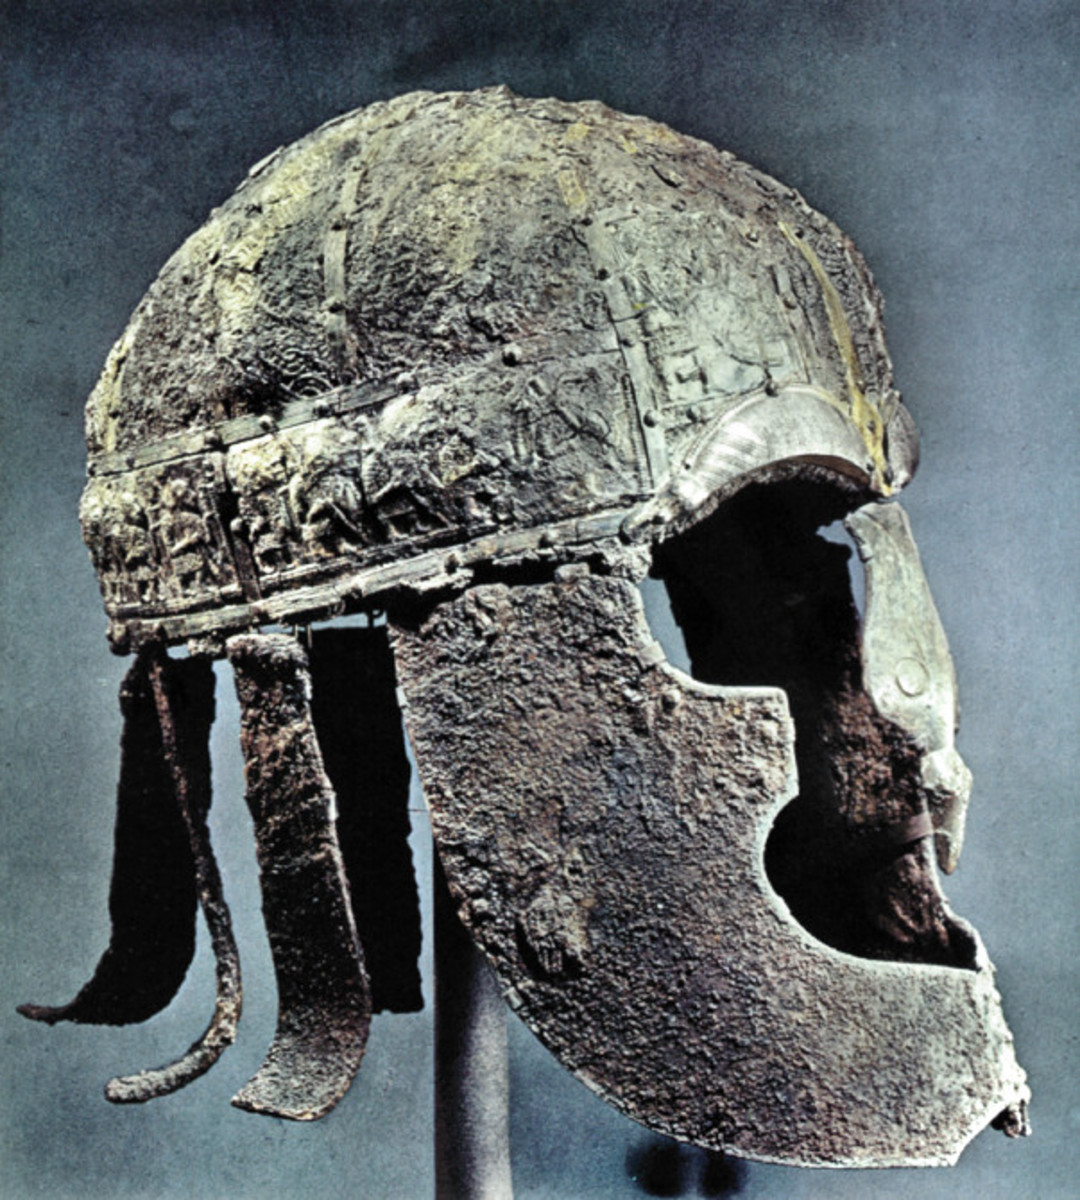 Vendel helm, found near Uppsala, Sweden. A fine example of a king's or nobleman's property from a burial mound, probably 7th Century